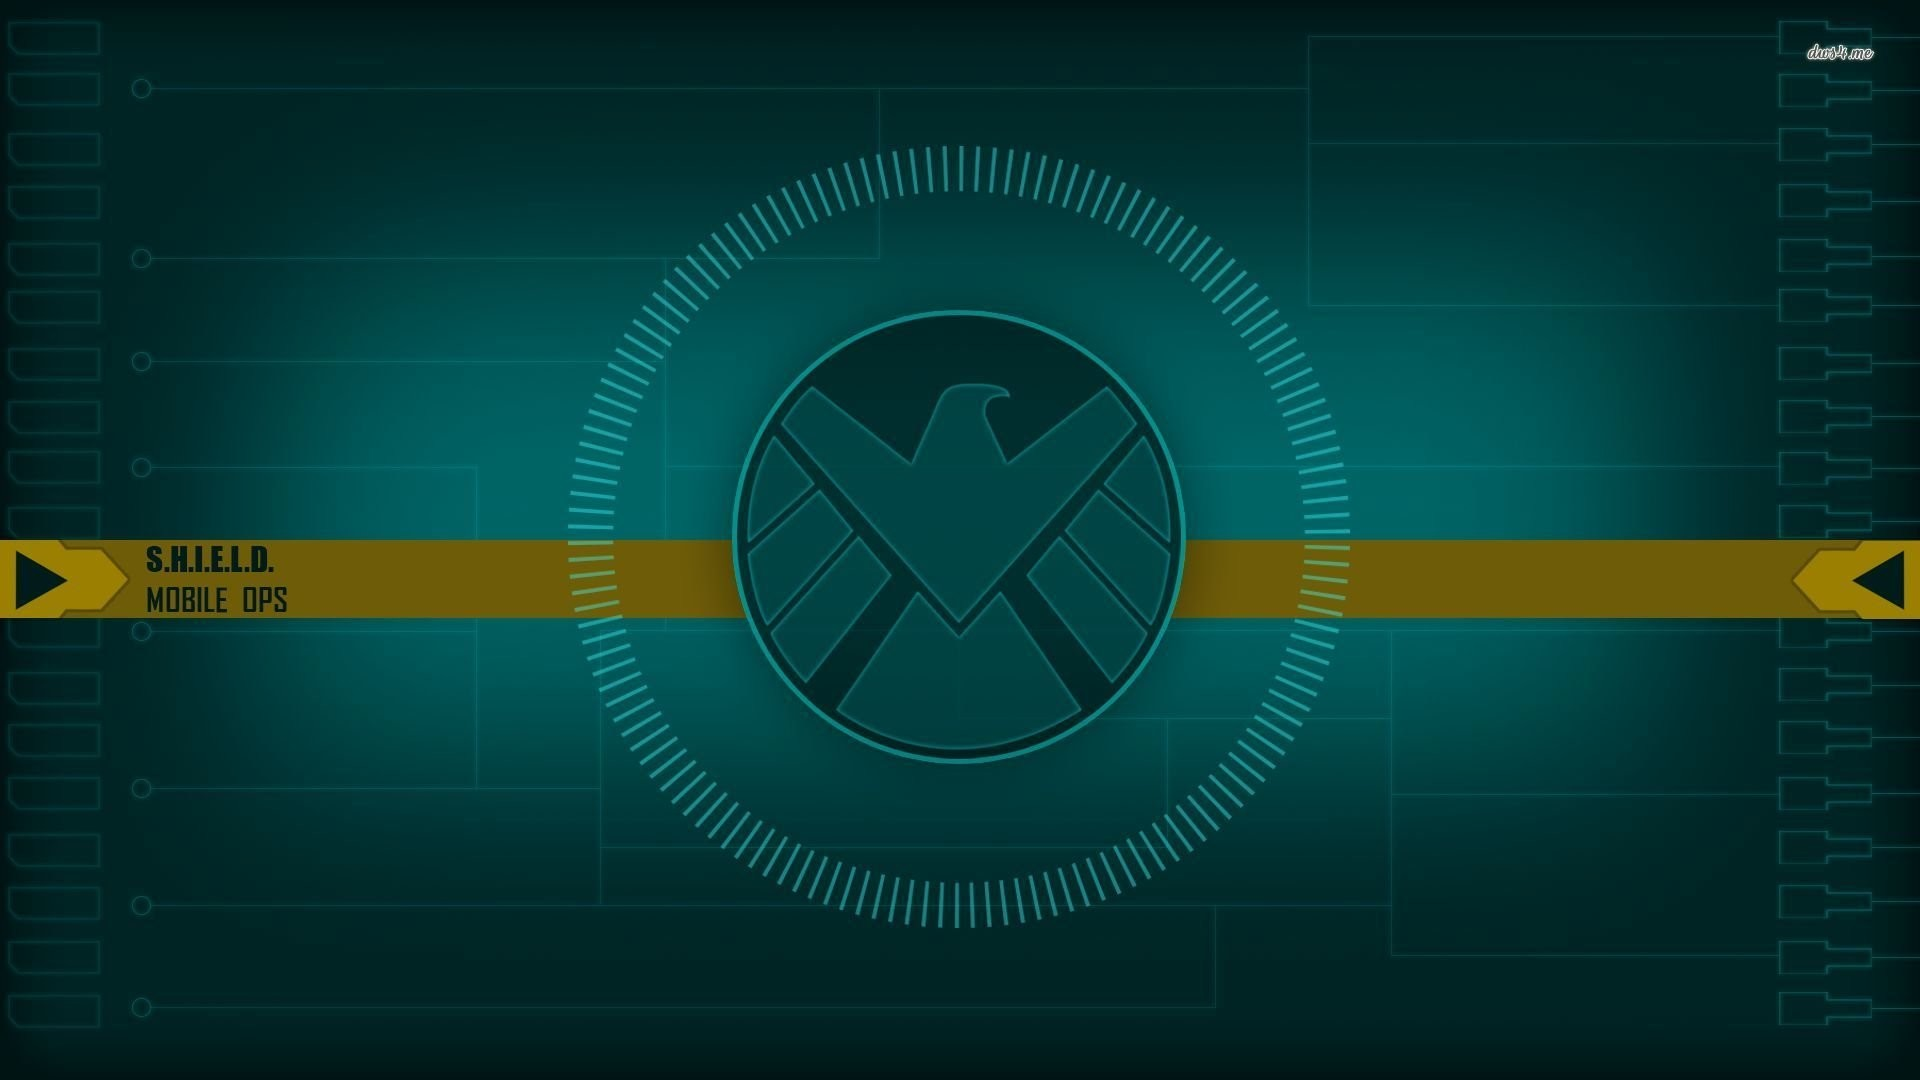 Marvel's Agents of S.H.I.E.L.D. Logo Wallpaper Wide or HD | TV .